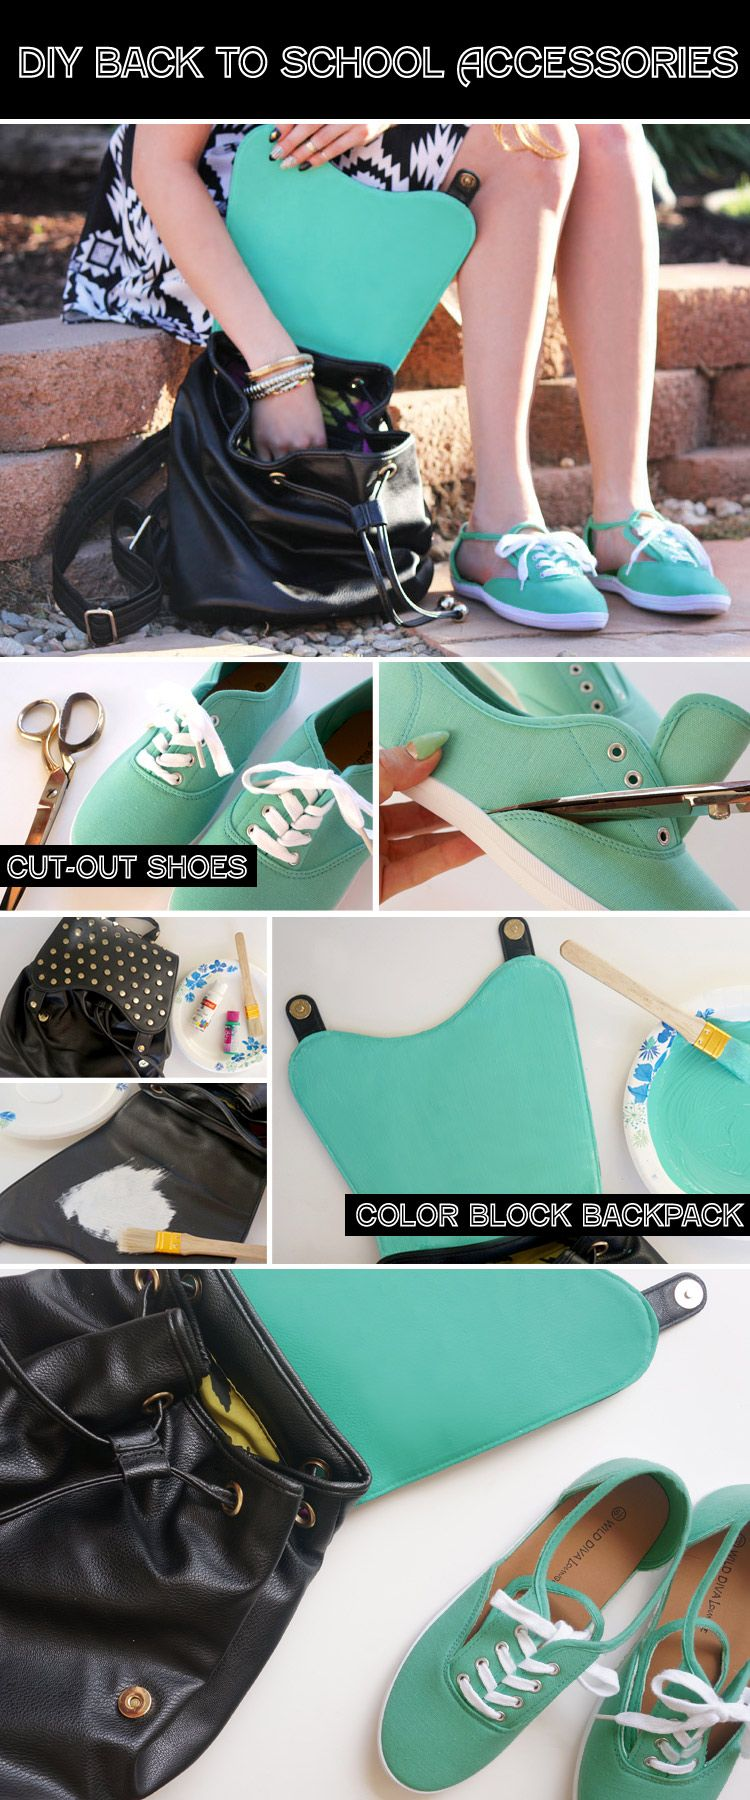 Do it yourself fashionable ideas diy shoes pinterest cansada do it yourself fashionable ideas solutioingenieria Choice Image